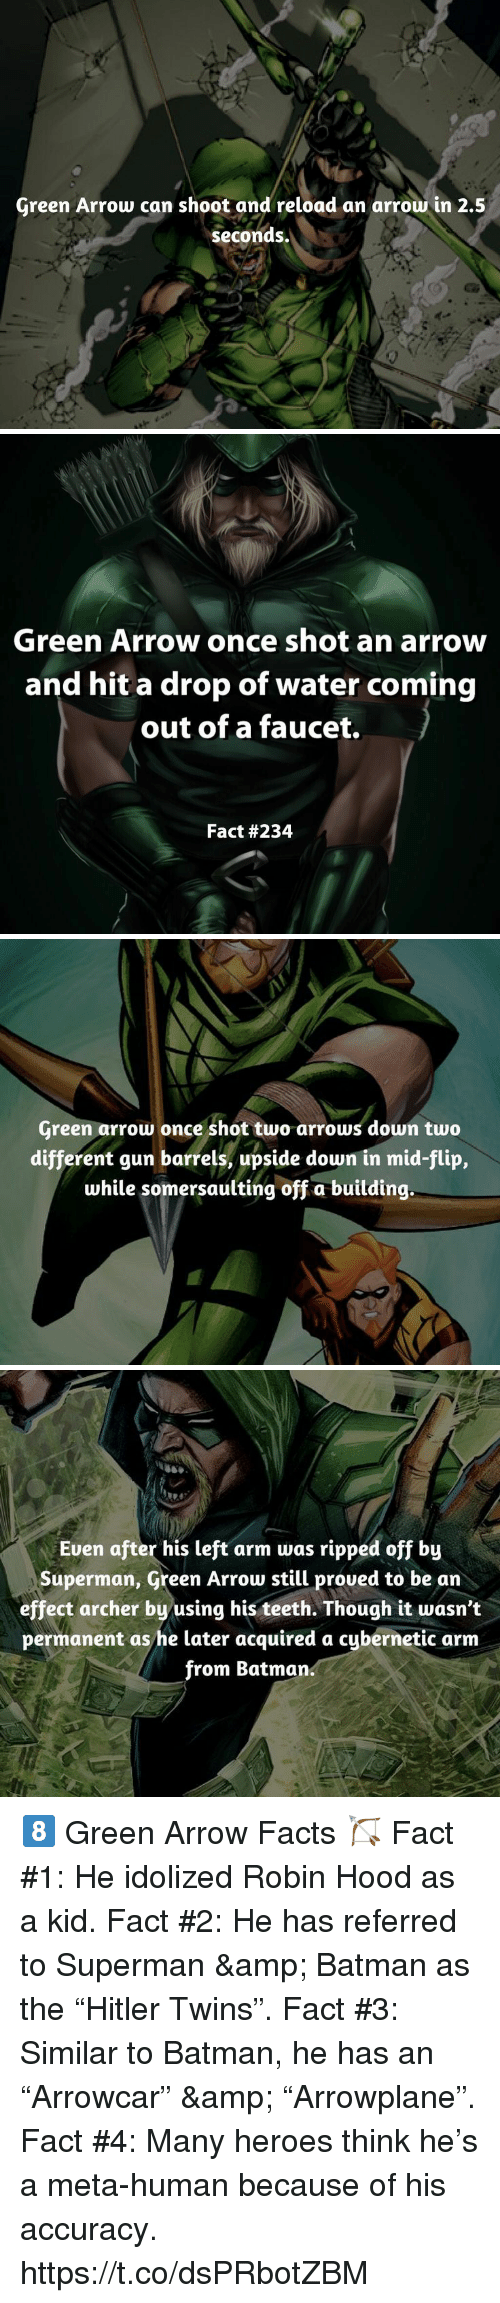 green arrow can shoot and reload an arrow in 25 seconds green arrow